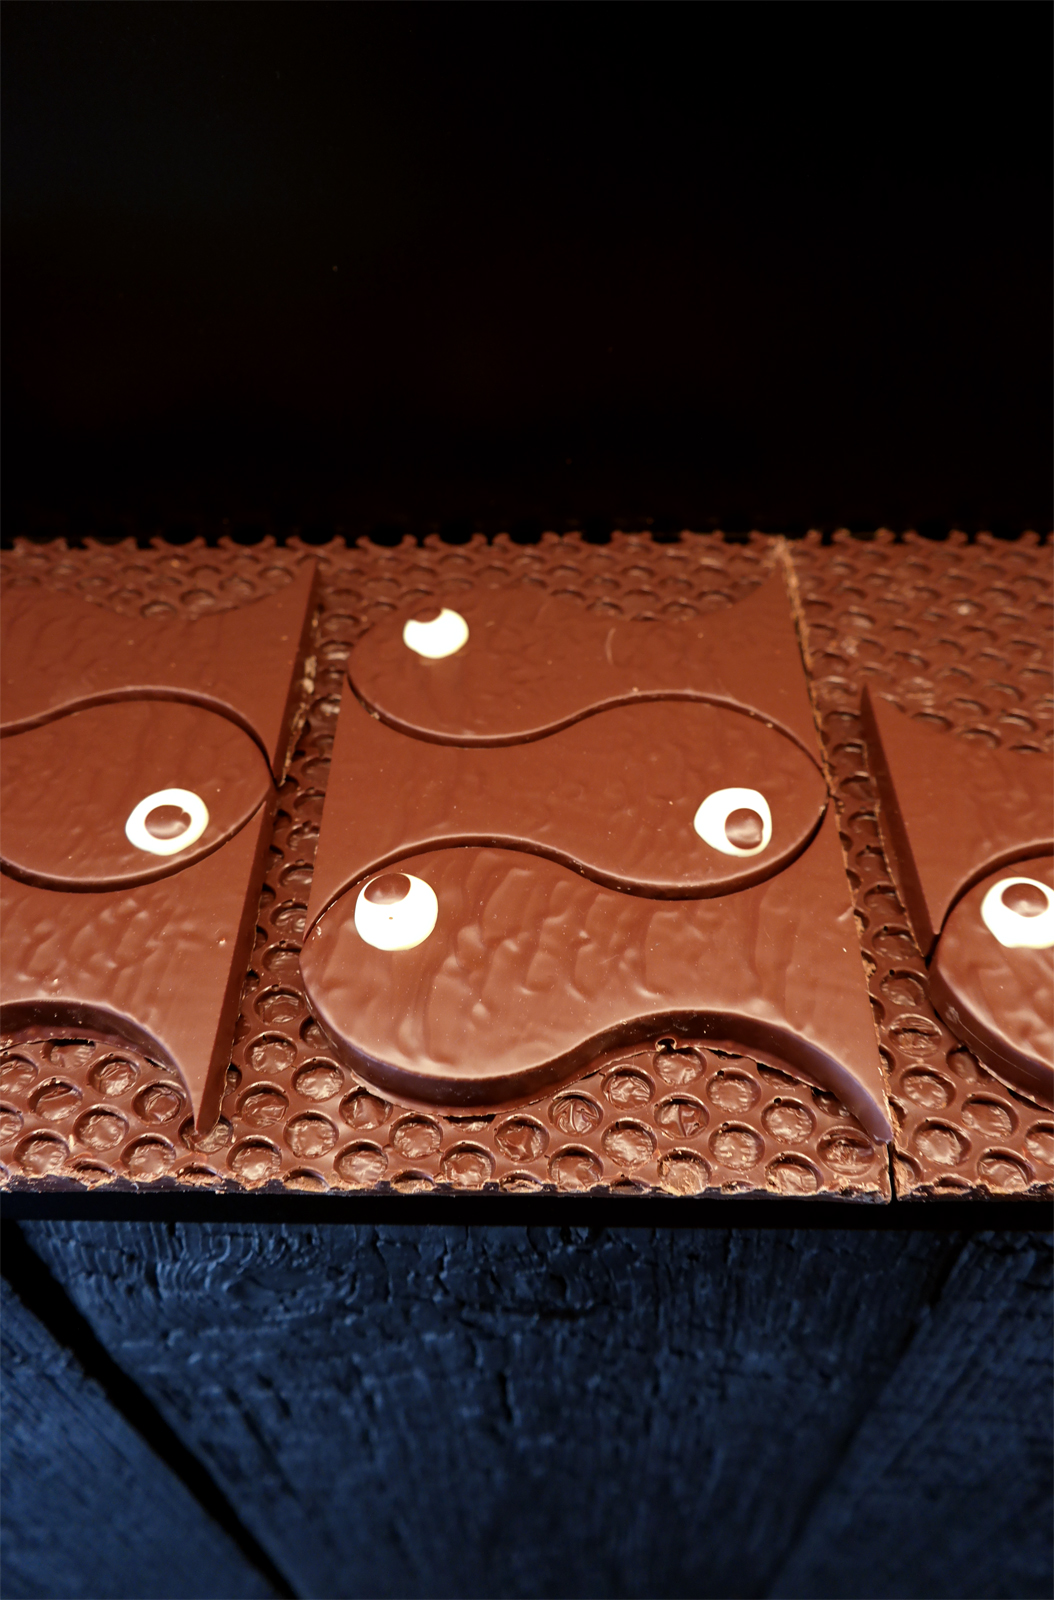 Poissons en chocolat au lait Patrick Roger chocolatier Saint Germain des Prés Paris Pâques 2016 photo usopfparis blog